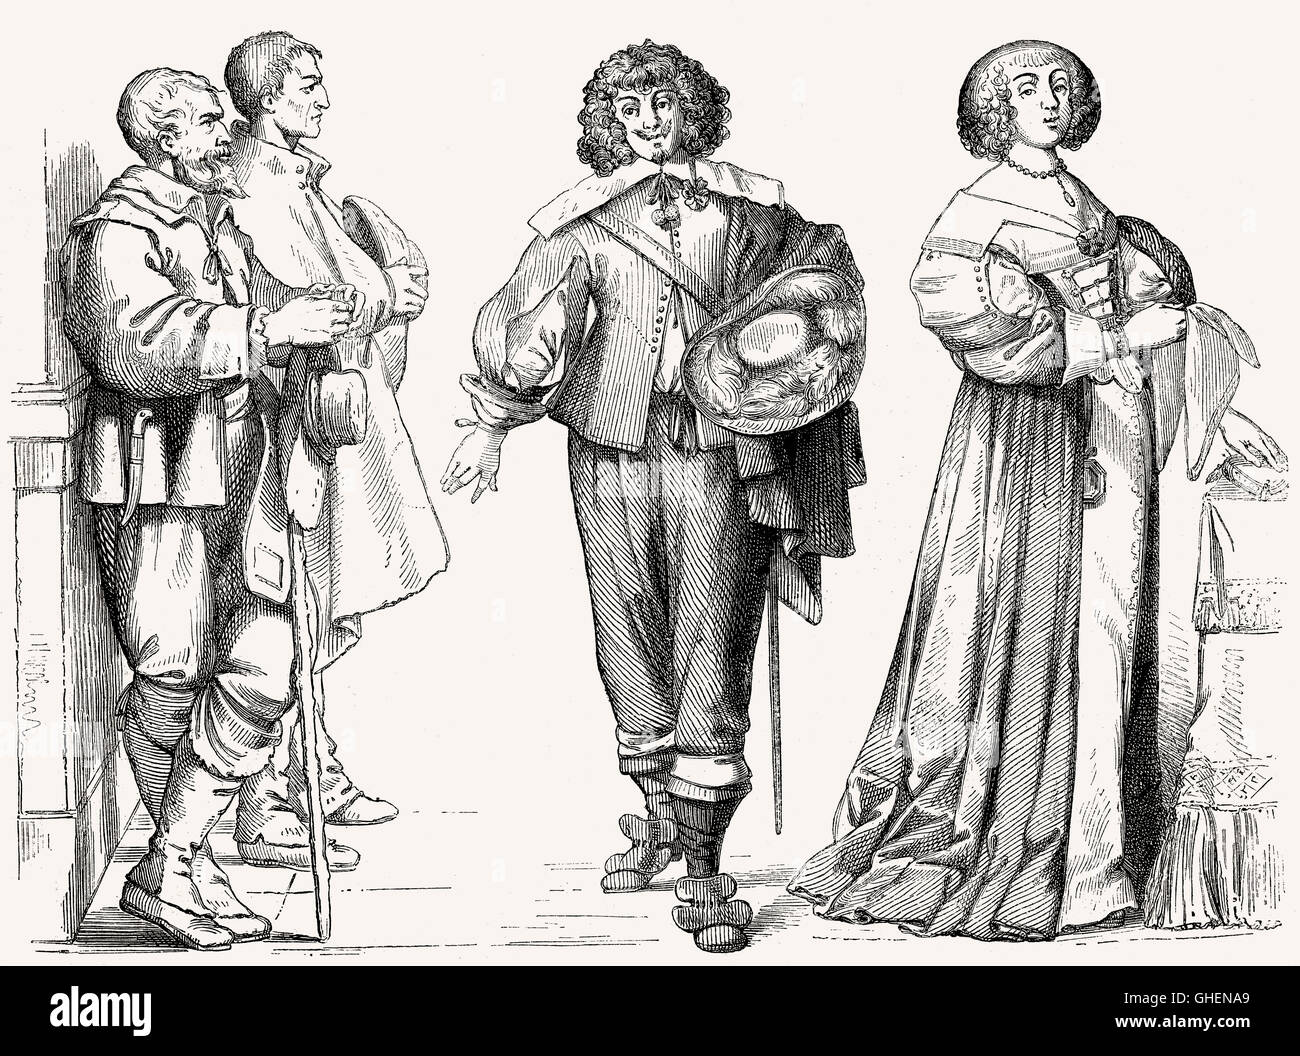 French costumes, 17th century - Stock Image